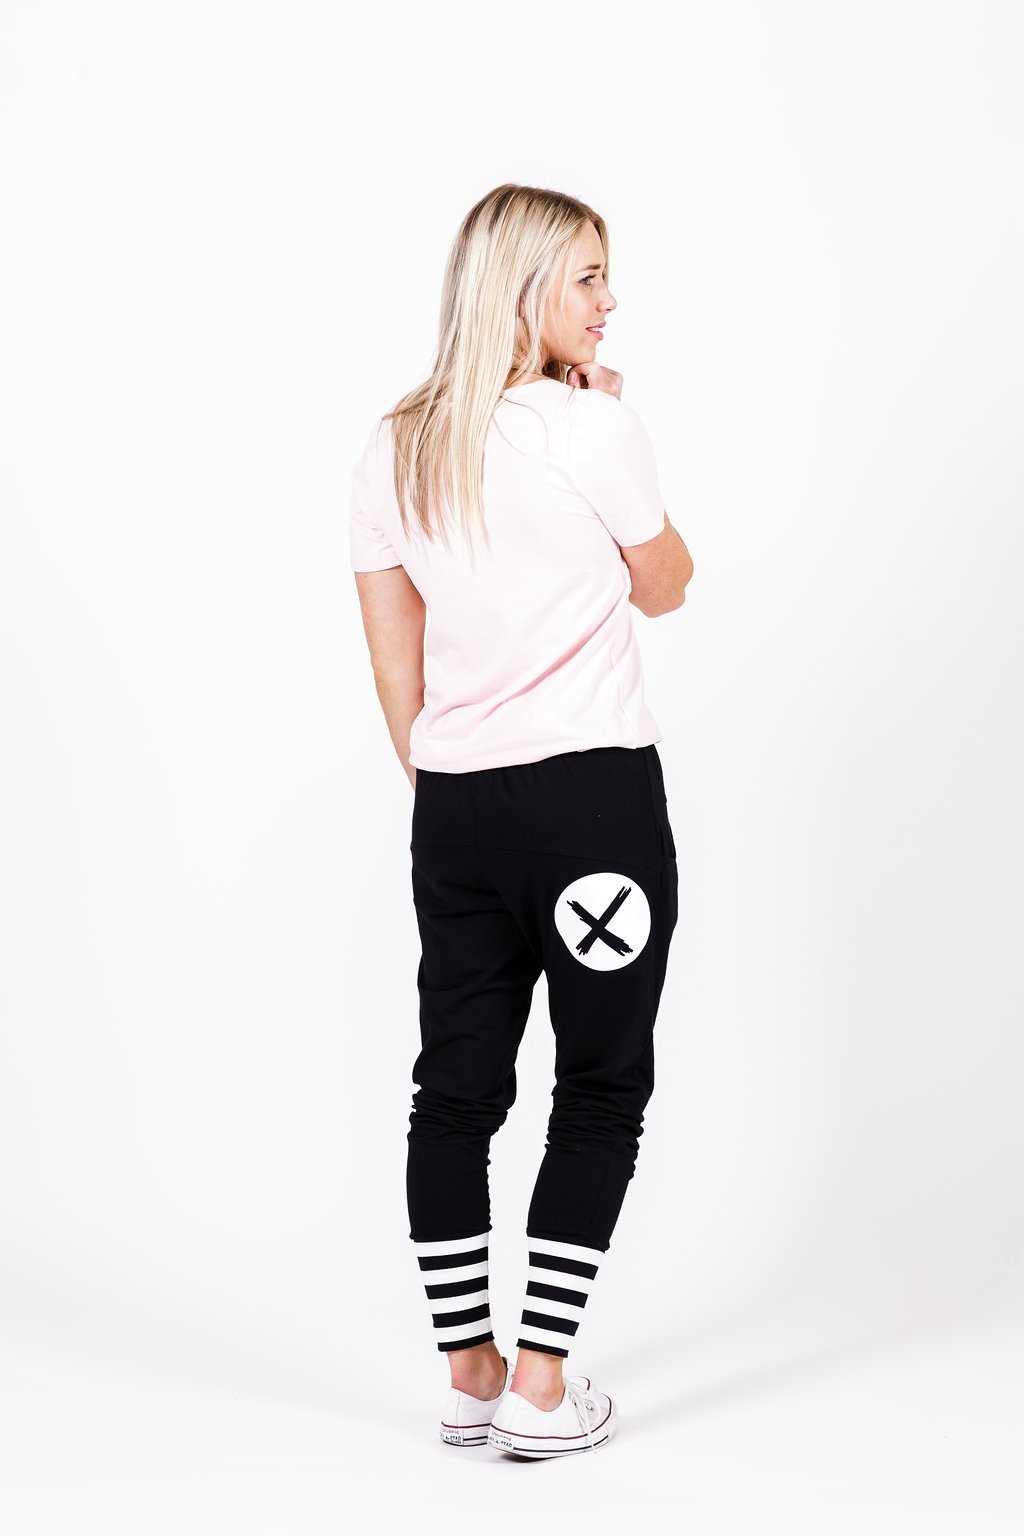 APARTMENT PANTS BLACK WITH WHITE PRINT & STRIPED CUFF - No image set - Ebony Boutique NZ